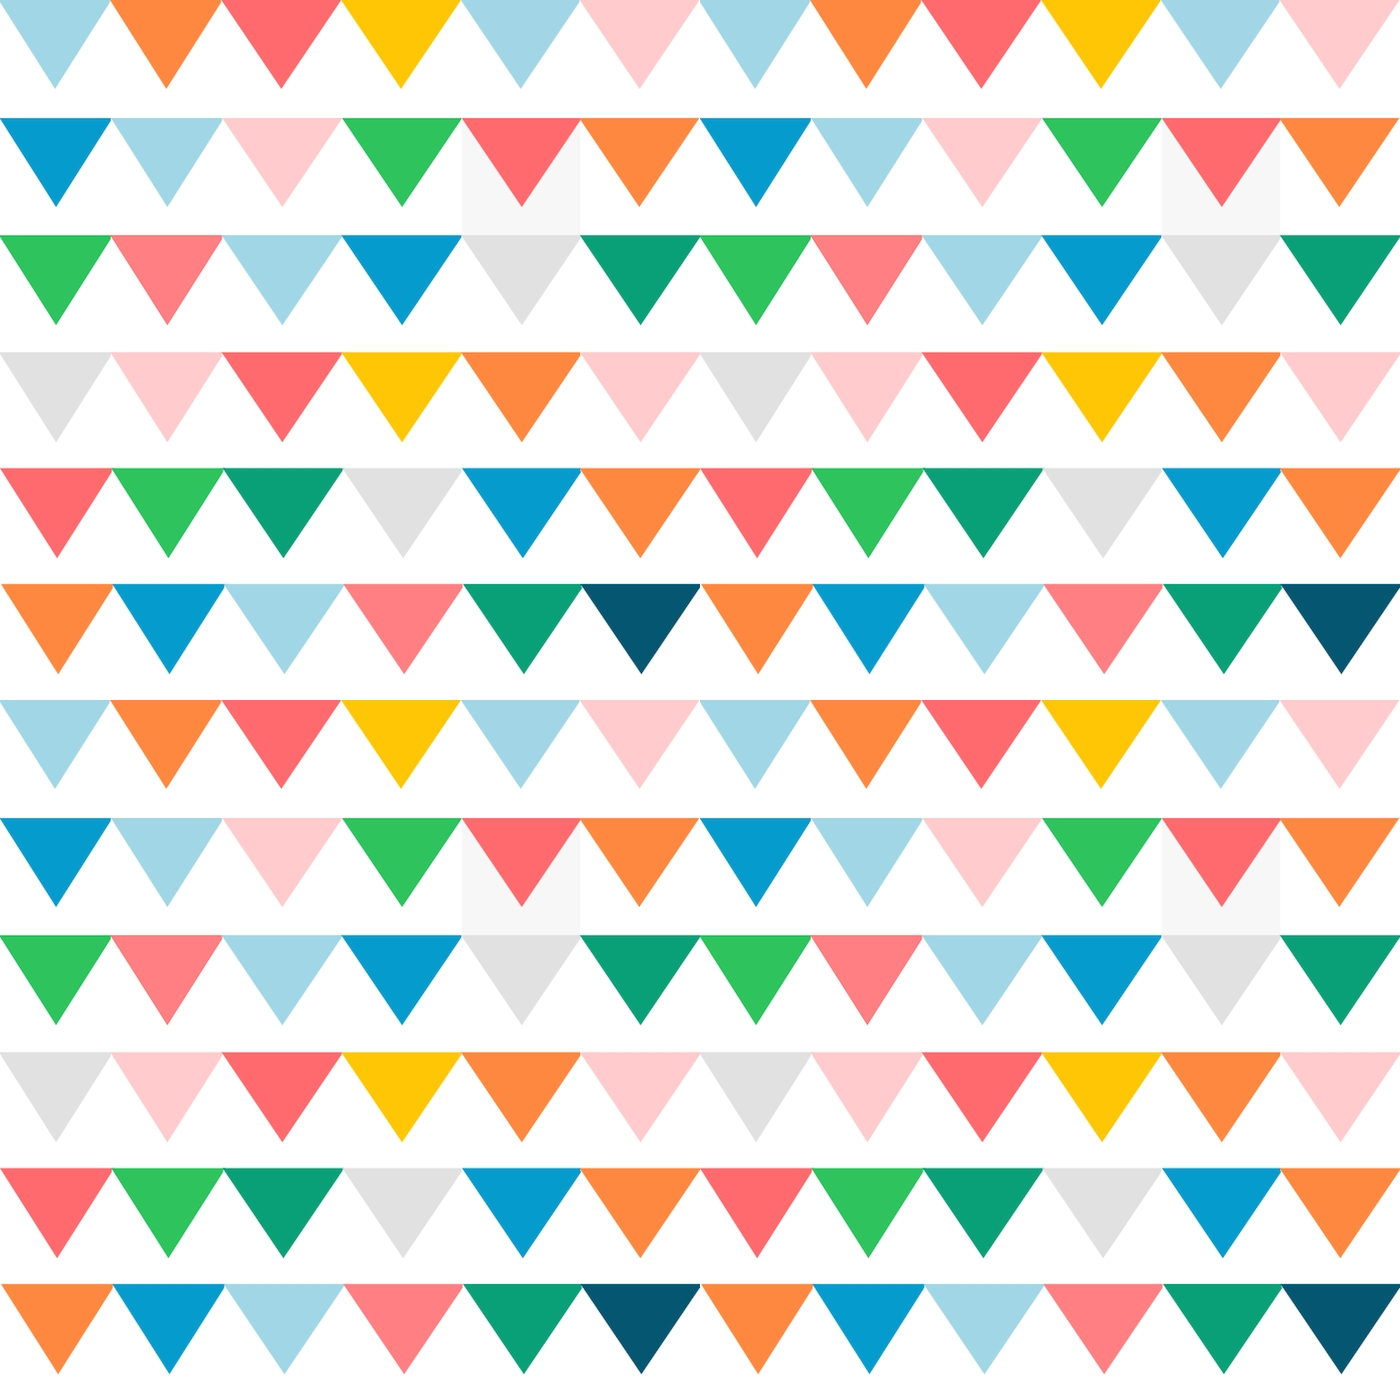 Free Printable Wrapping Paper Patterns | Writings And Essays Corner - Free Printable Patterns